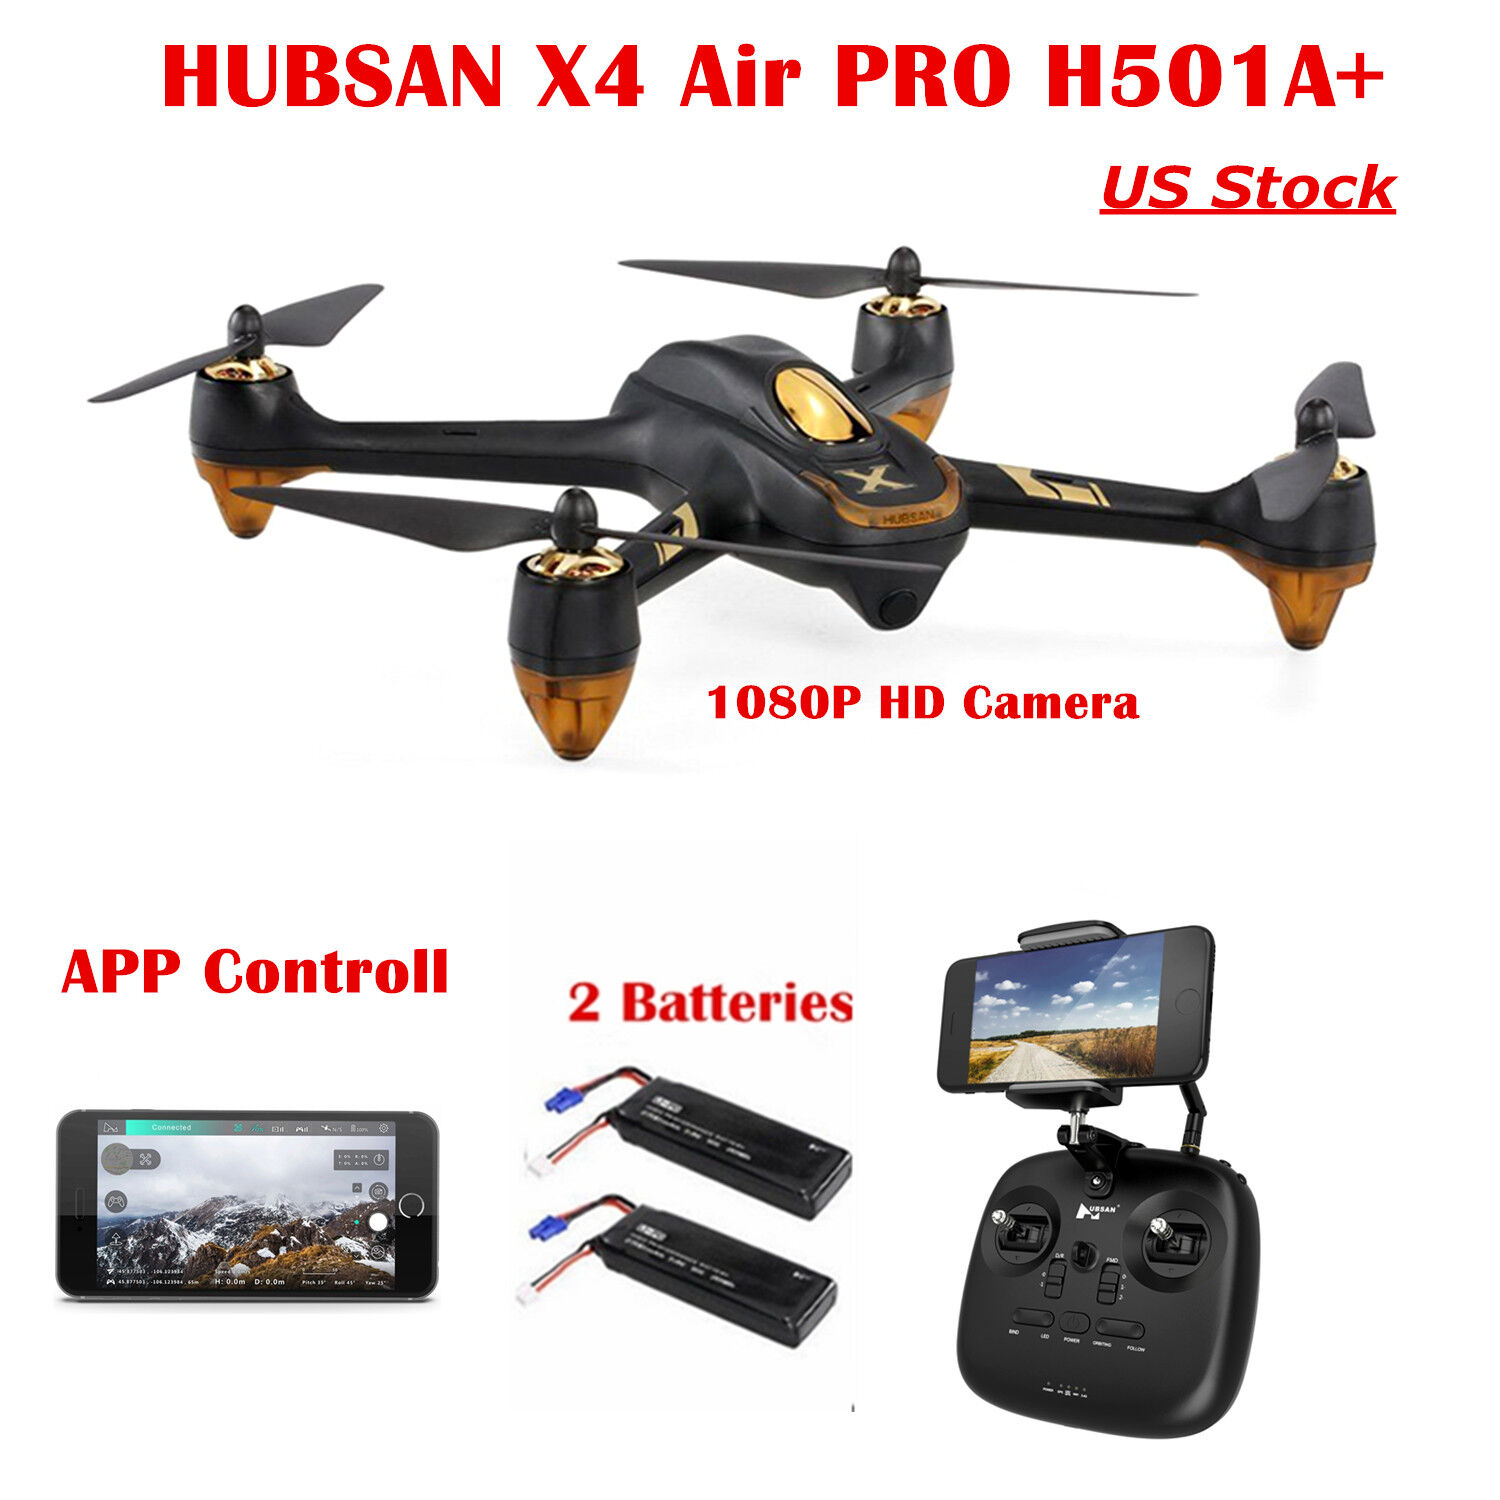 Hubsan X4 H501A Brushless FPV RC Quadcopter APP 1080P CAM Follow Me GPS + Remote